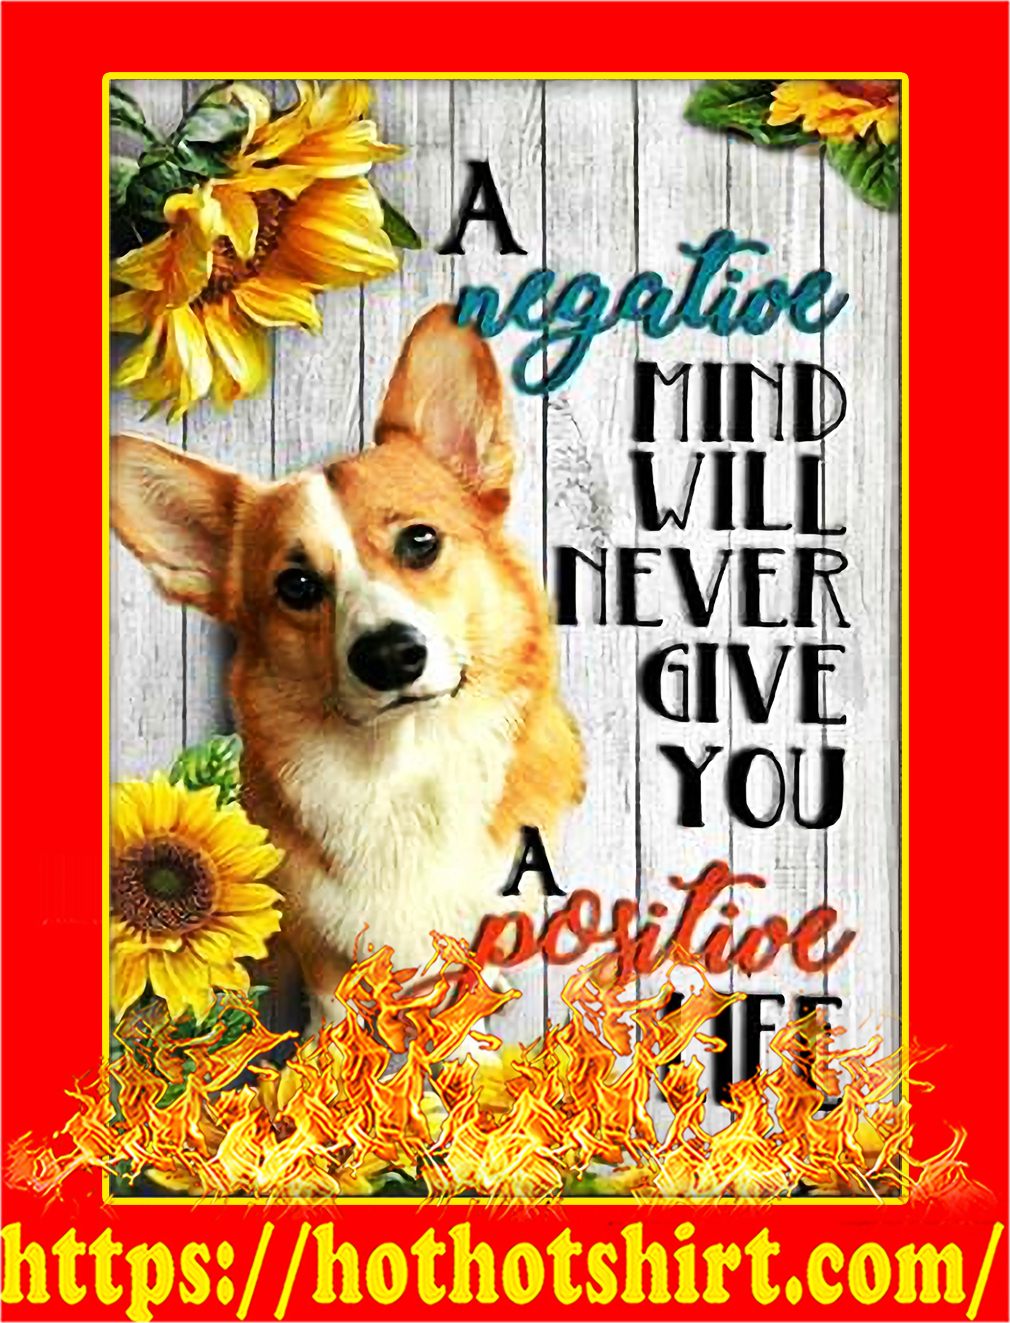 Corgi A negative mind will never give you a positive life poster - A4